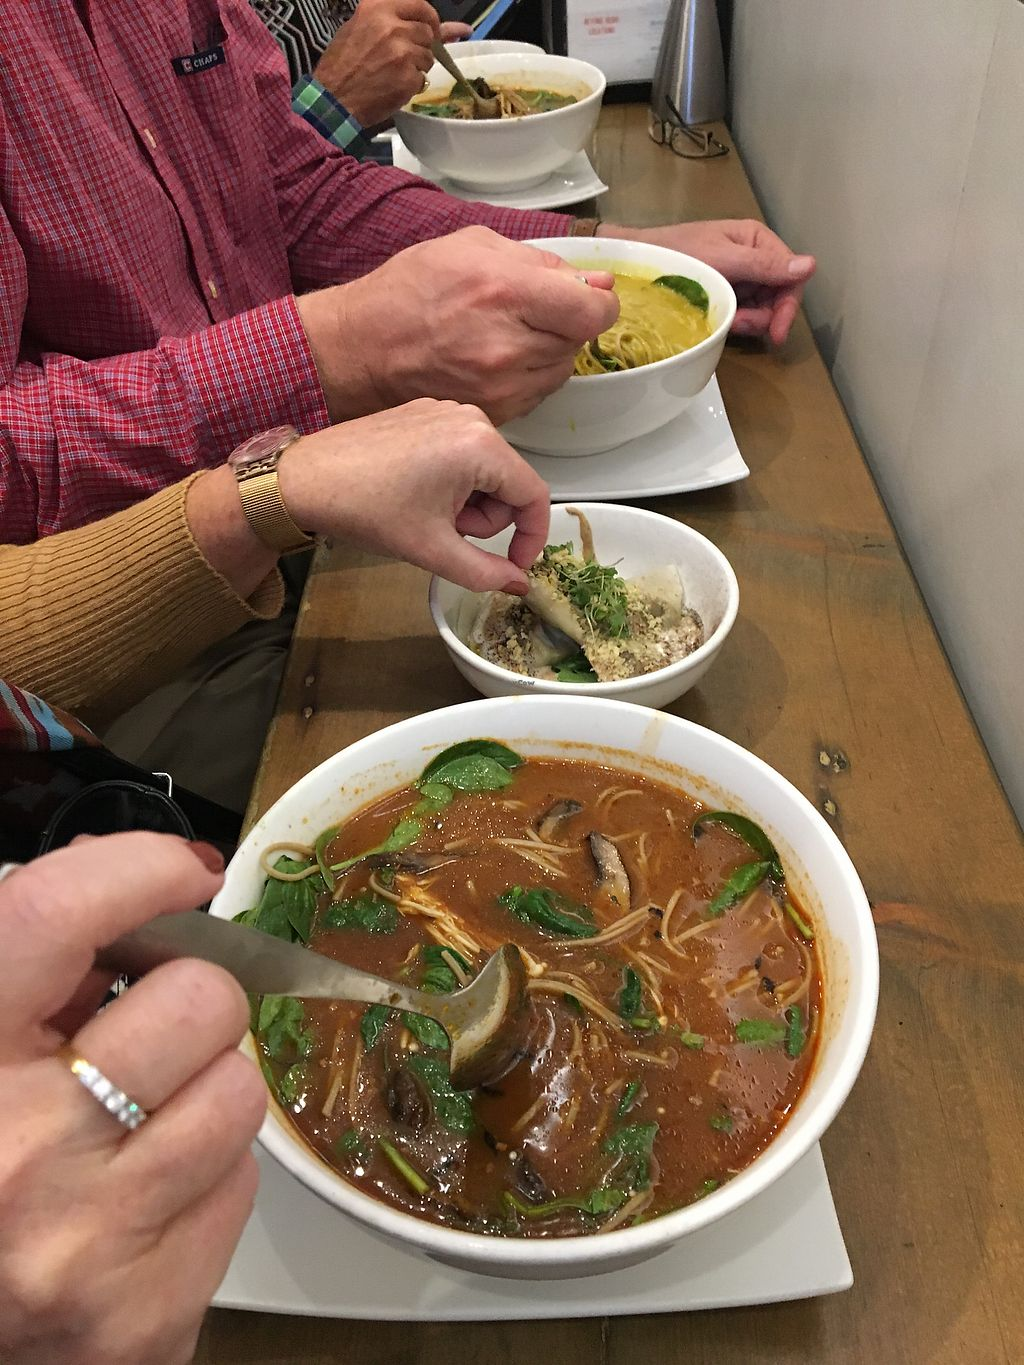 """Photo of Beyond Sushi - Midtown West  by <a href=""""/members/profile/Thepennsyltuckyvegan"""">Thepennsyltuckyvegan</a> <br/>Soups <br/> October 17, 2017  - <a href='/contact/abuse/image/54327/315994'>Report</a>"""